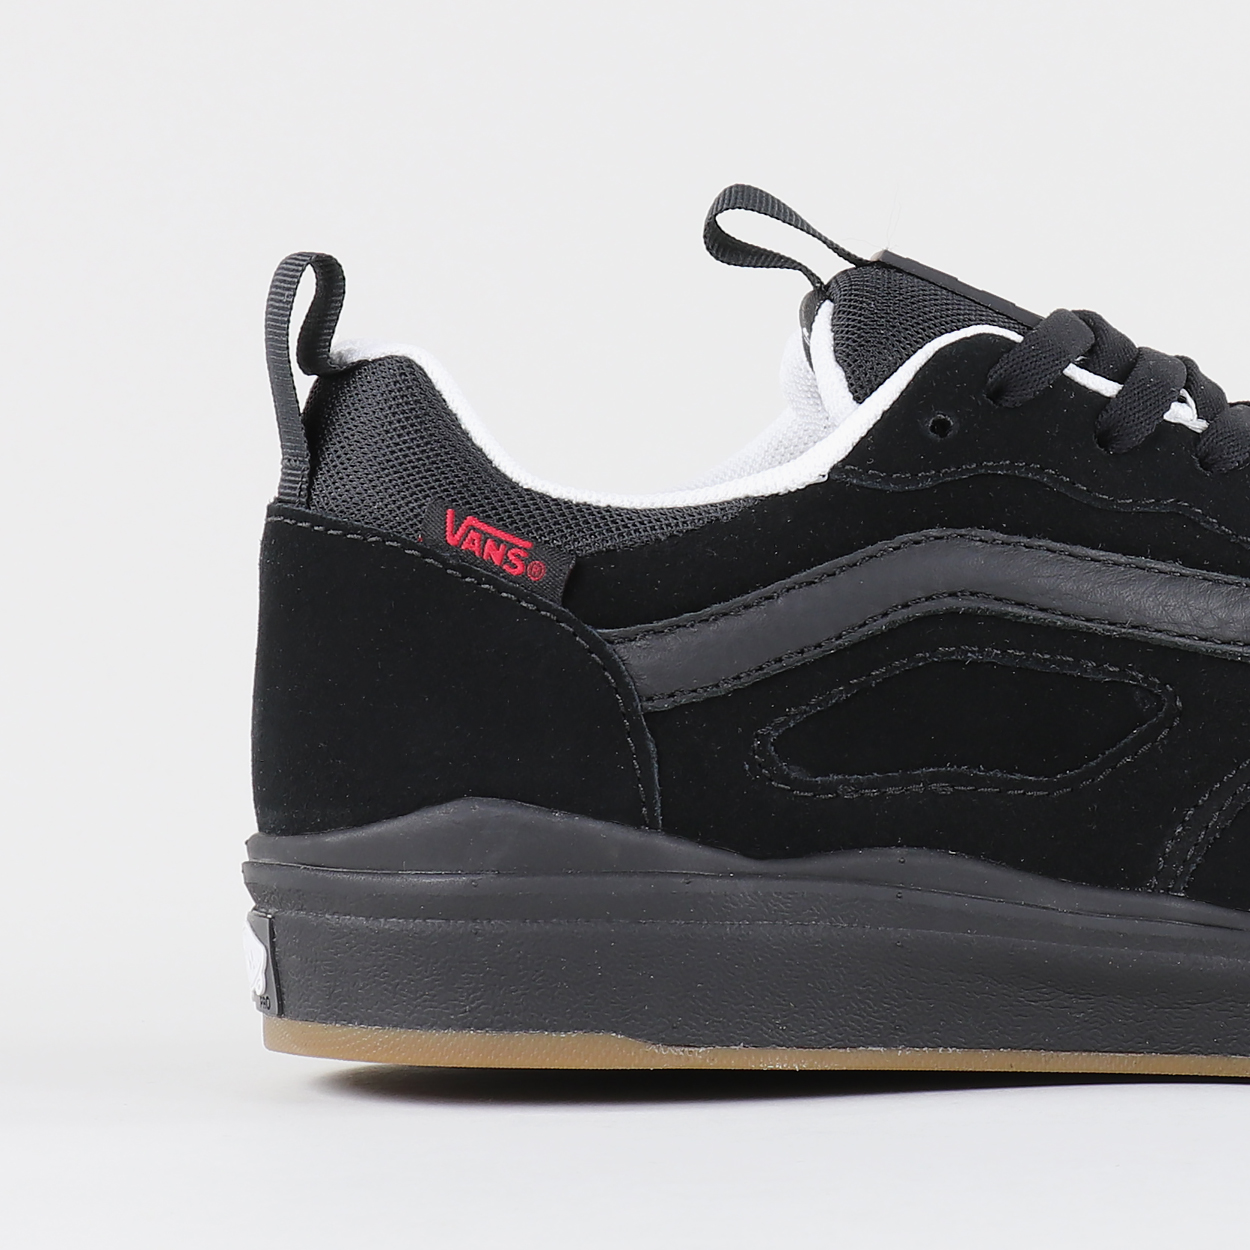 13a8ca73c750e3 Two legendary skate institutions clash to bring you a fresh take on Vans   sporty UltraRange Pro shoe with an Ultracush Lite insole